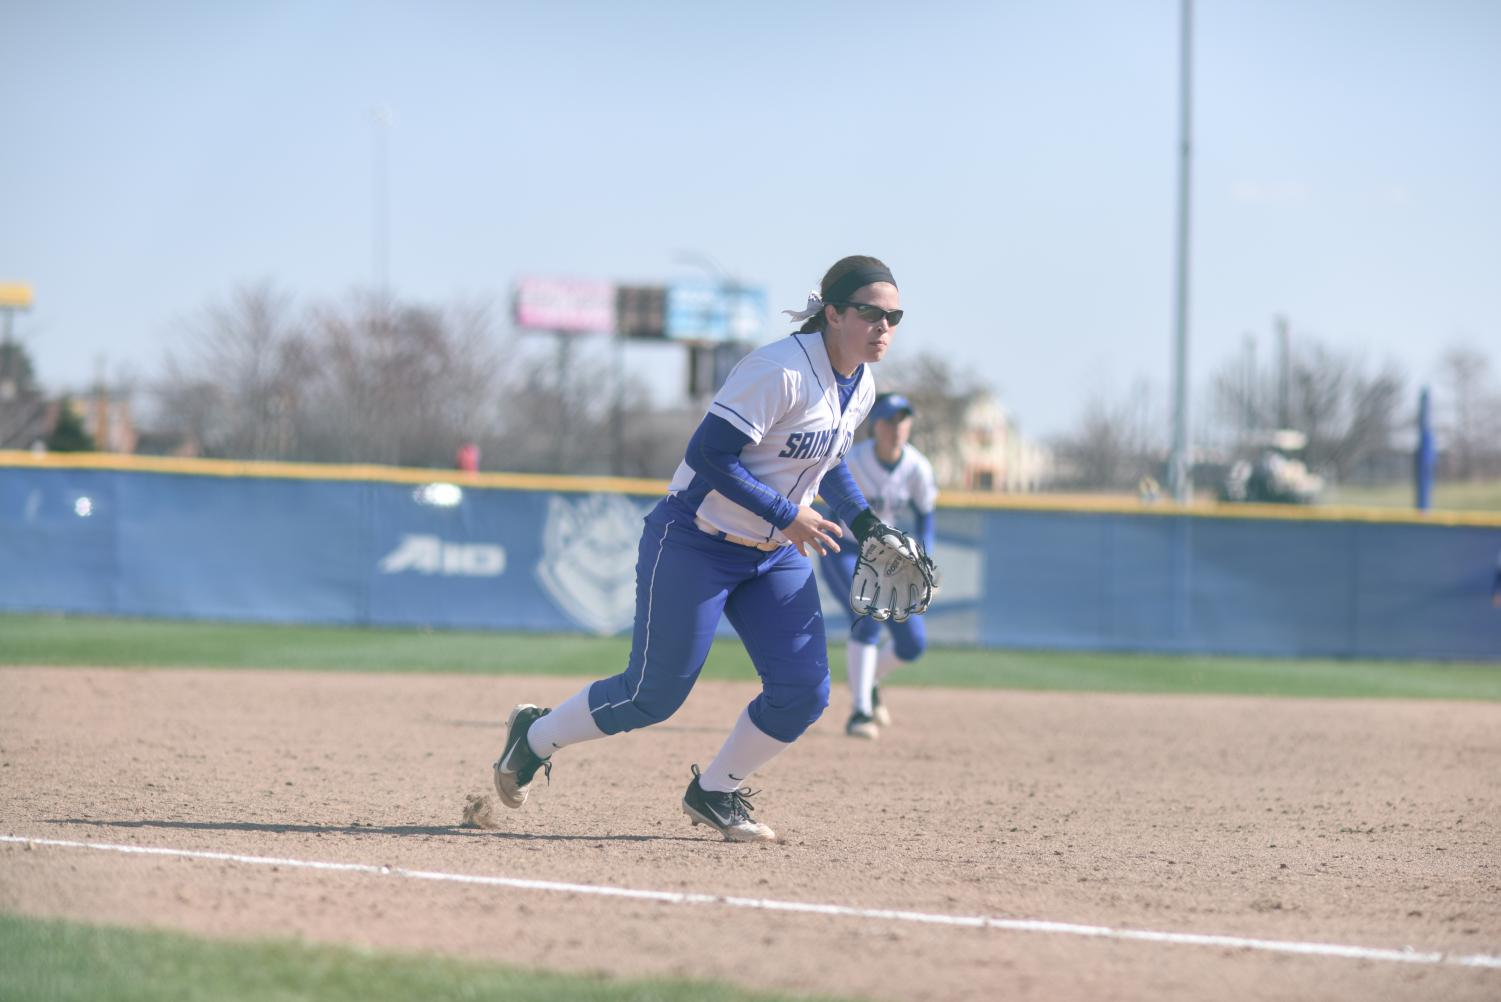 Senior infielder Allie Macfarlane fields a ground ball against SIU. She hit her fifth career grand slam at the Rock Chalk Challenge.